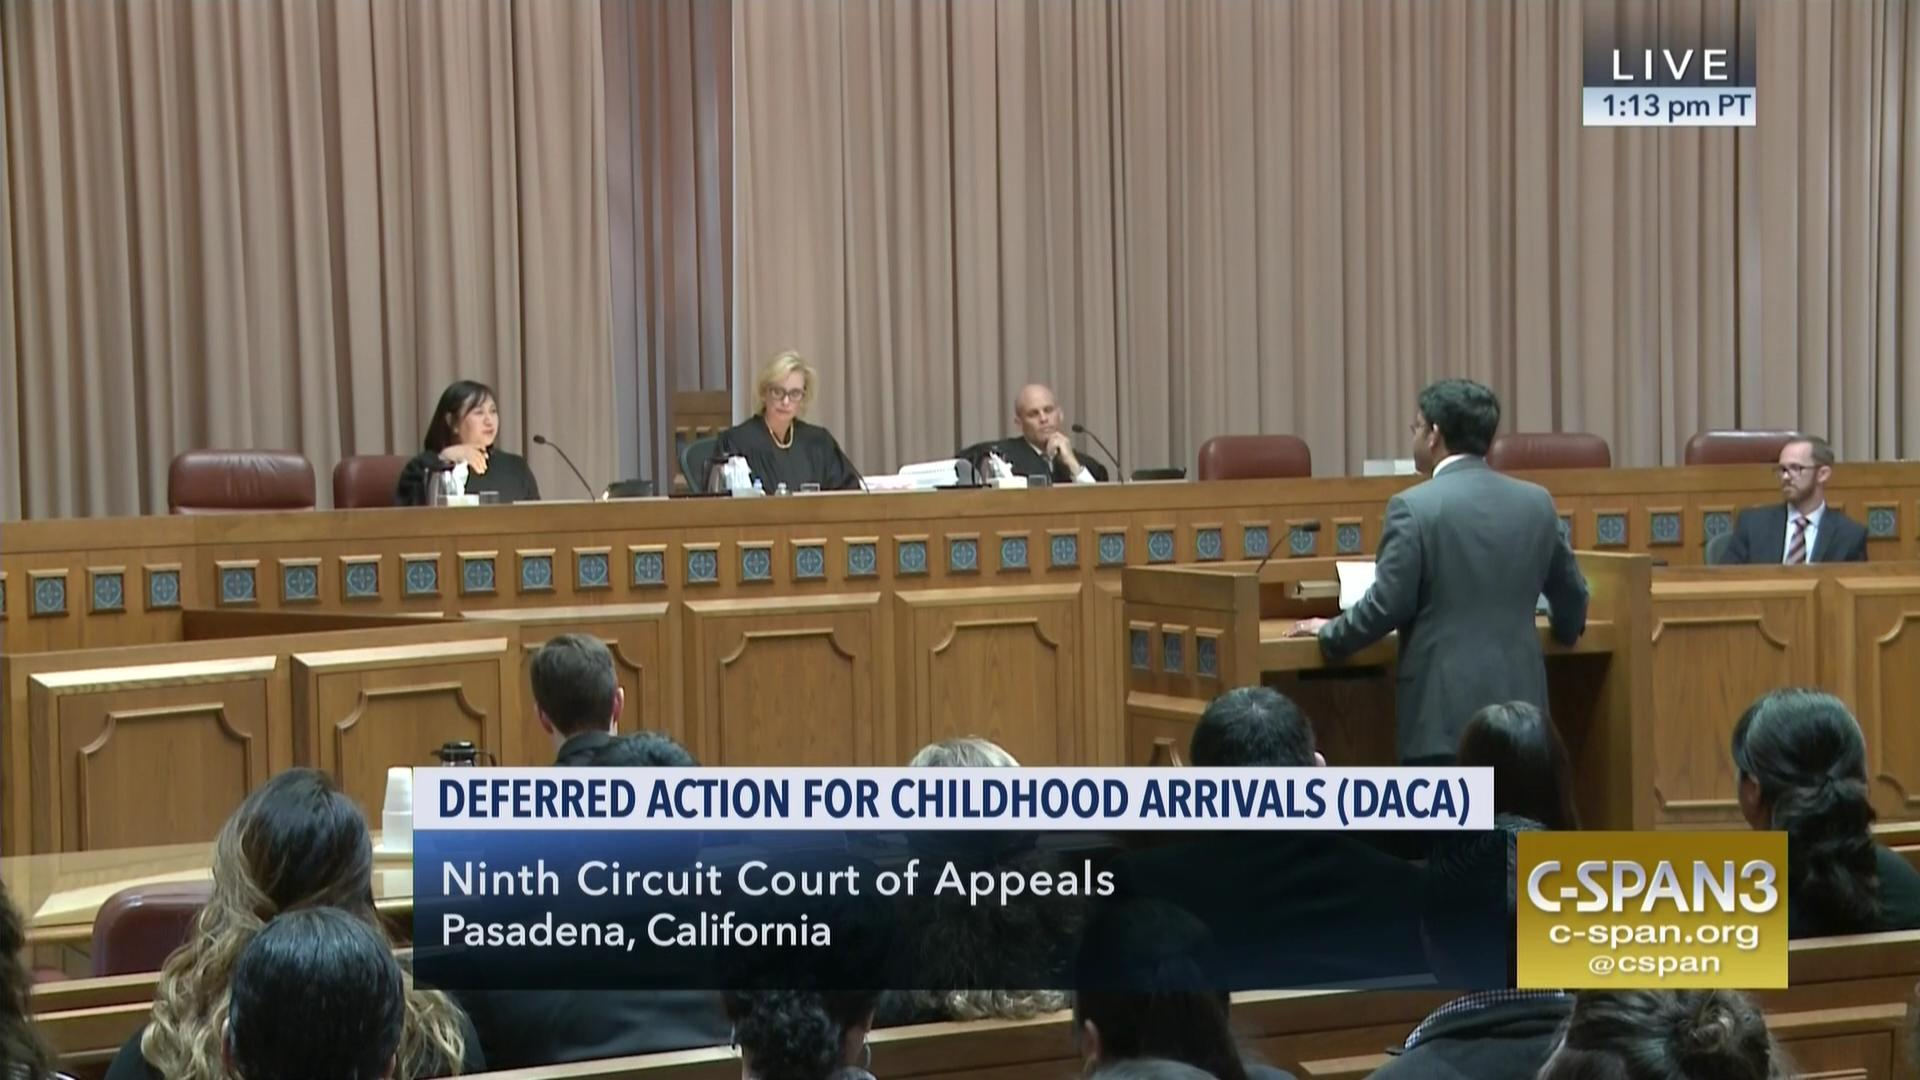 Ninth Circuit Hears Oral Argument Daca Case May 15 2018 Video C Aa Recorded Speakers Great To Listen On Tape